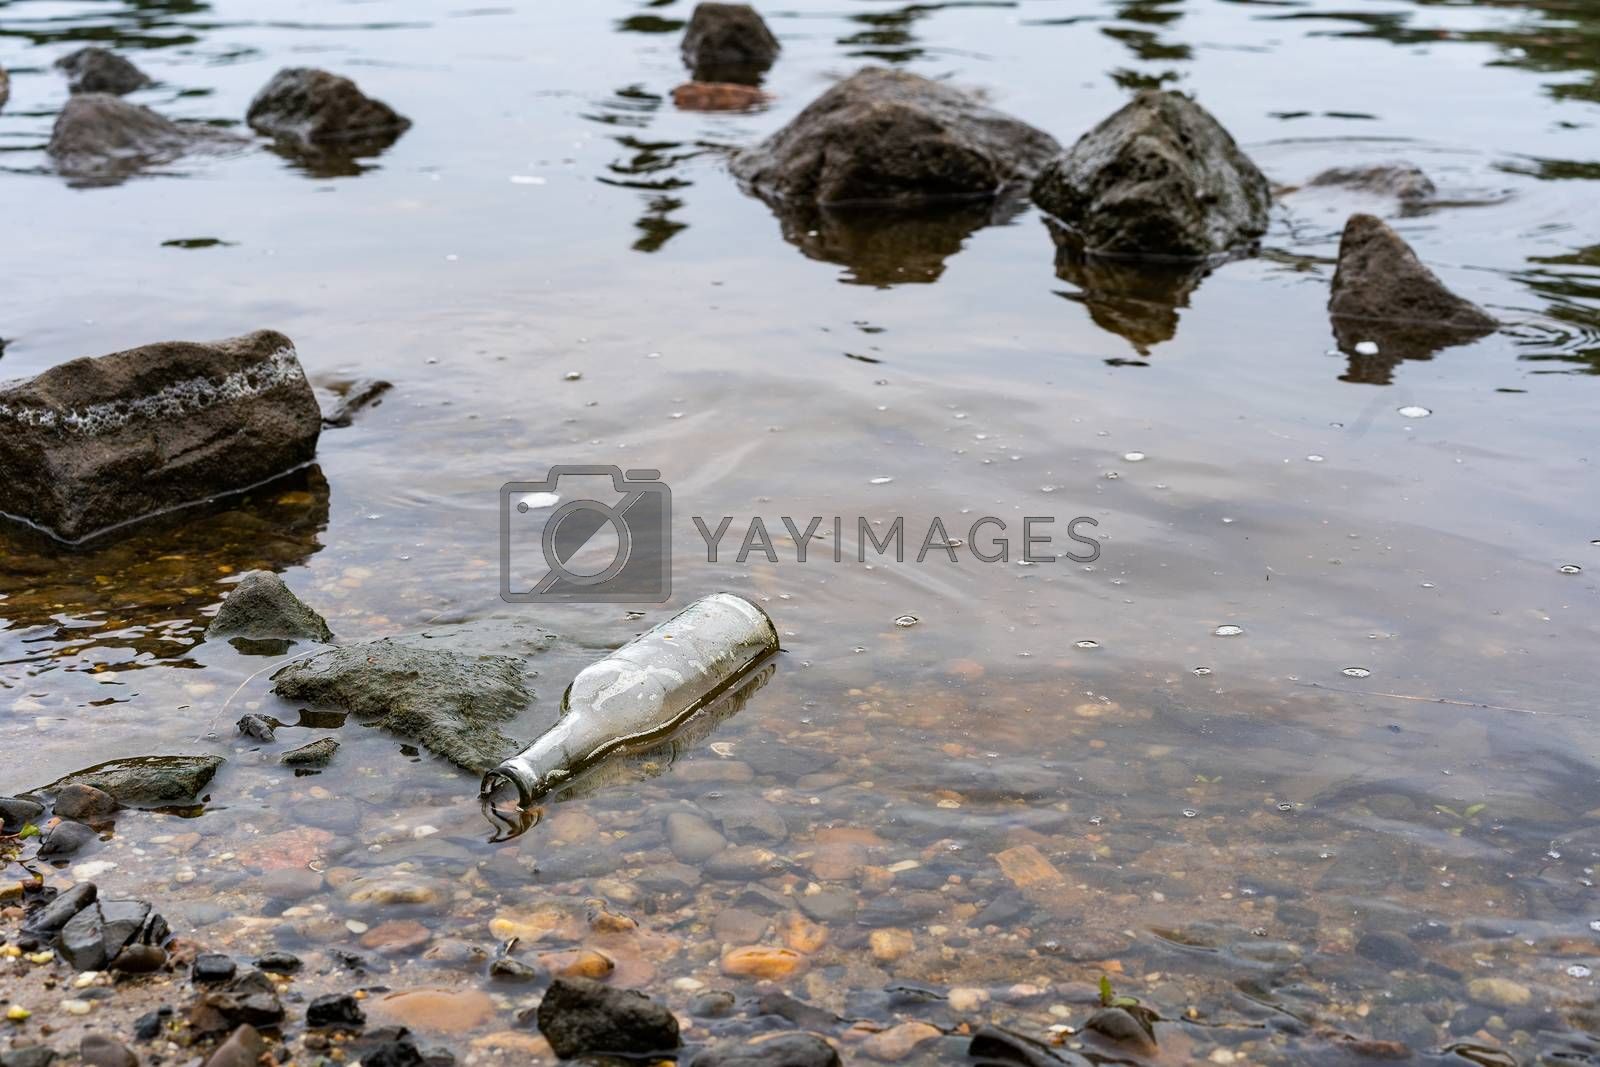 A glass bottle in the river as litter. by Daniel Albach